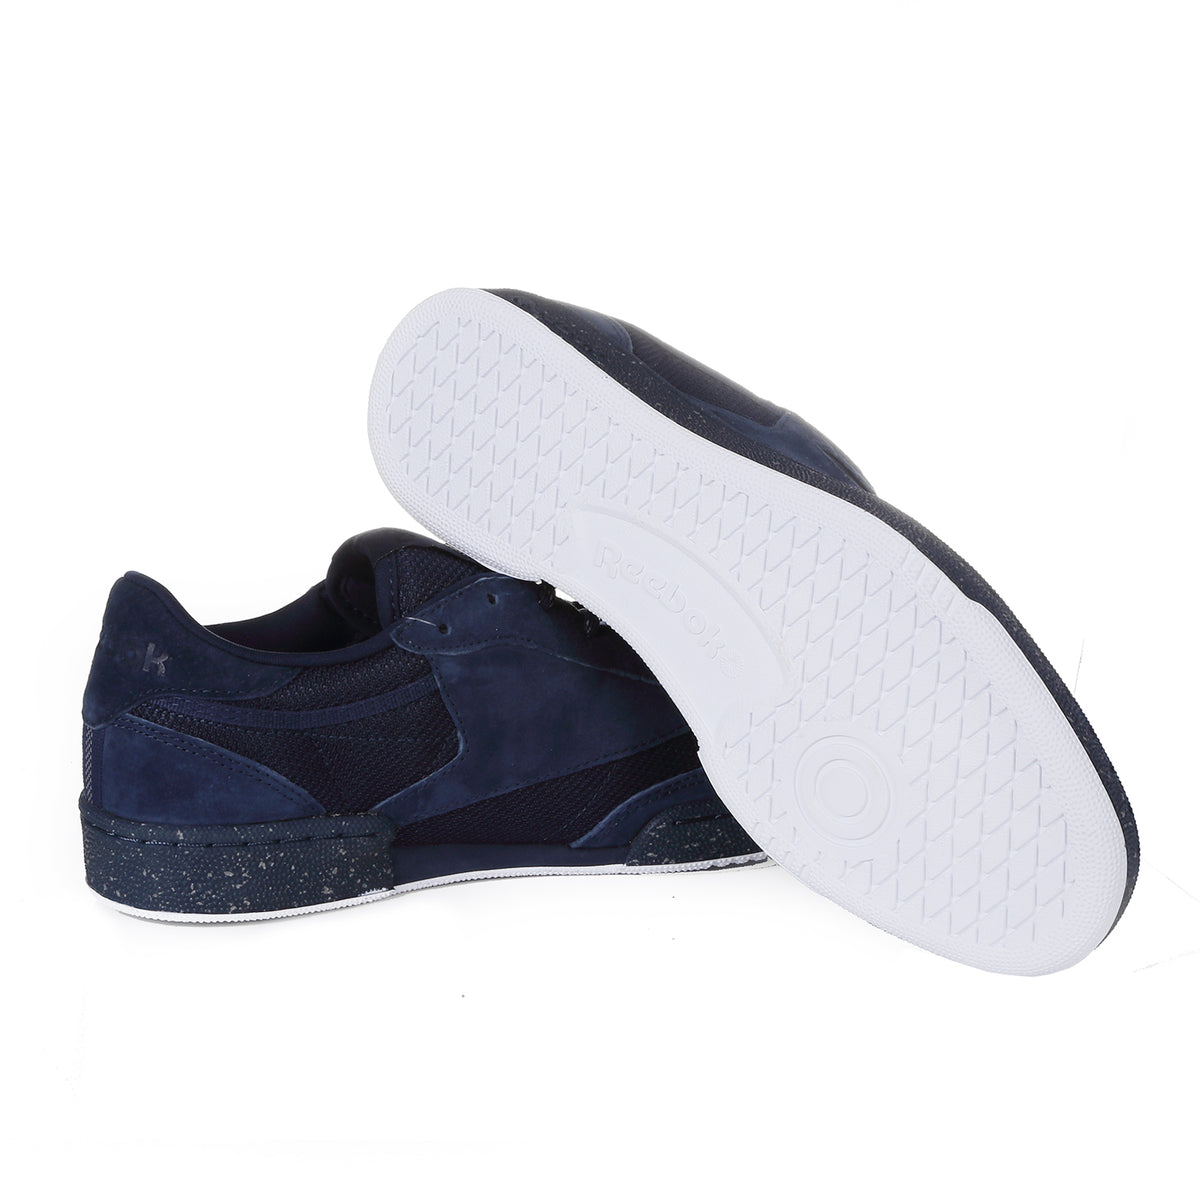 Reebok - Club C 85 ST - Navy/White